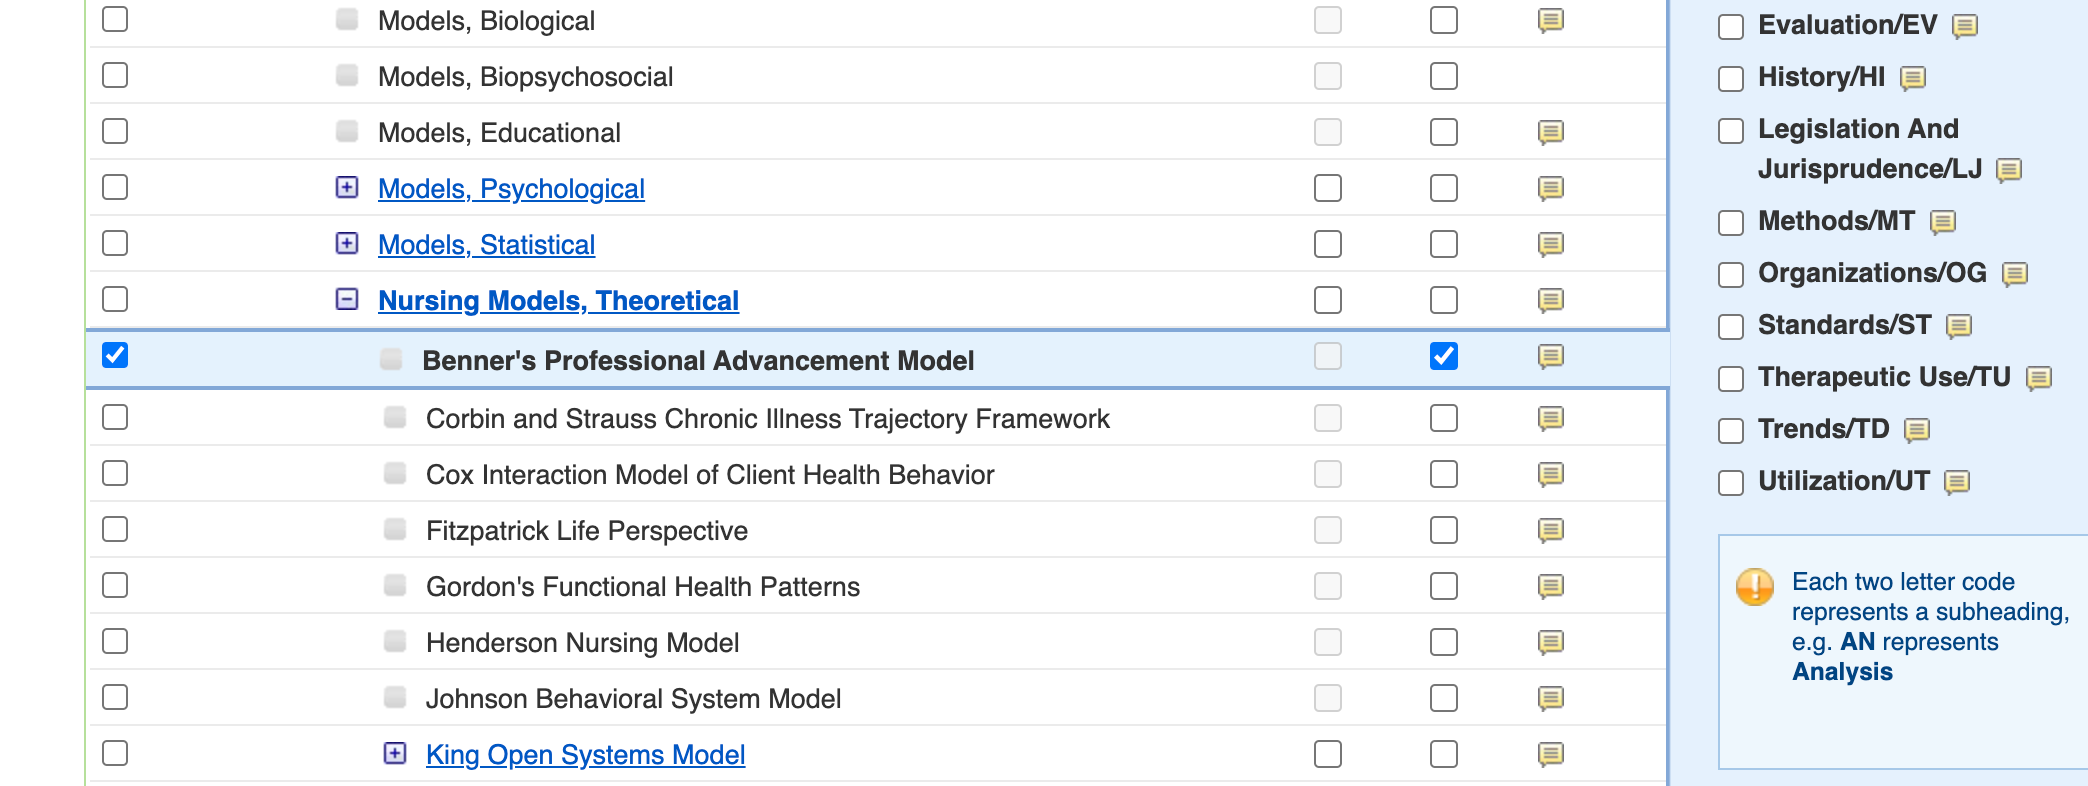 Benner's model selected as major concept in CINAHL Subject Headings list